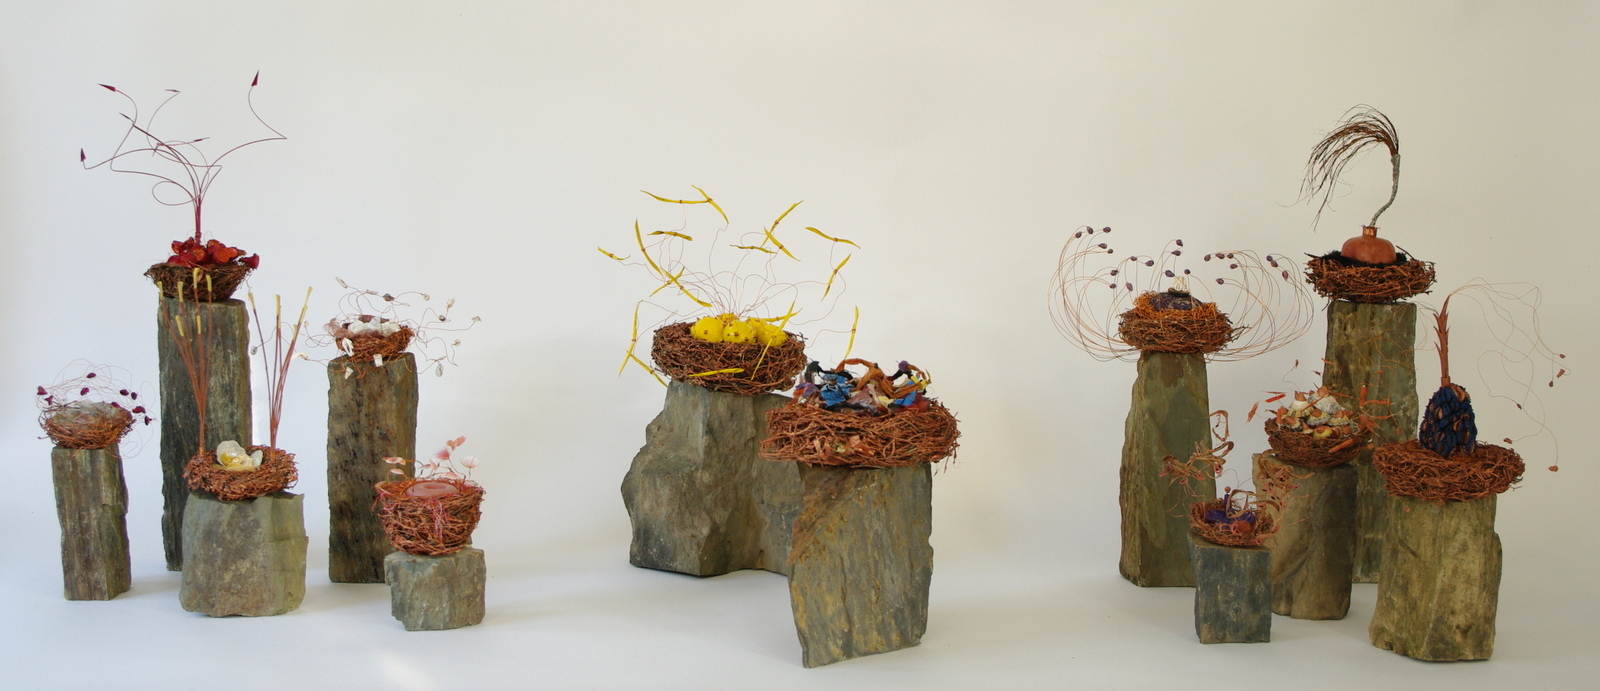 2008<br>birds nests, slate, natural materials